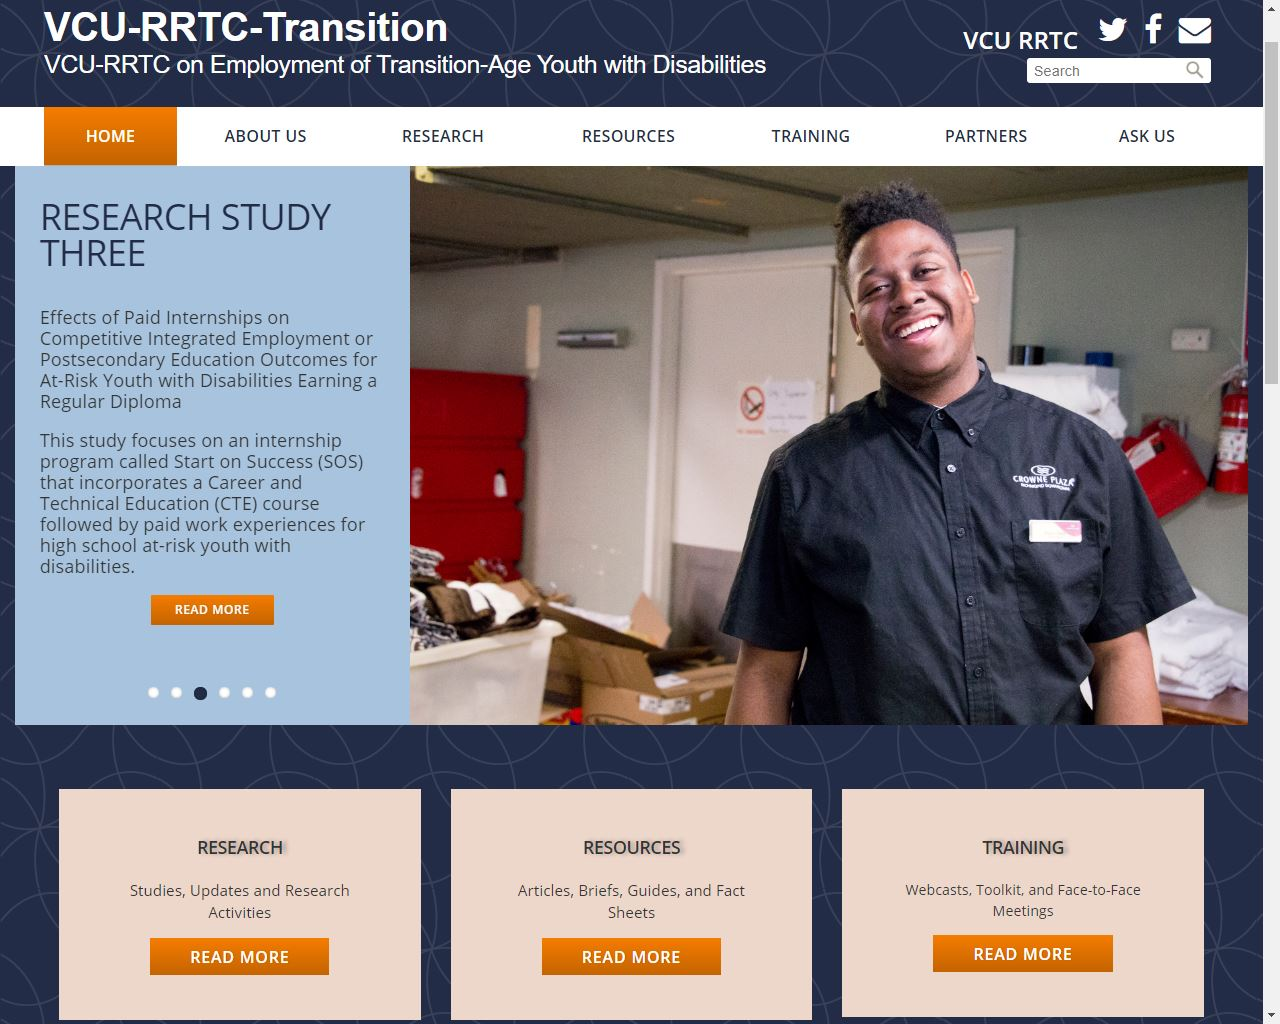 VCU RRTC on on Employment of Transition-Age Youth with Disabilities website screenshot